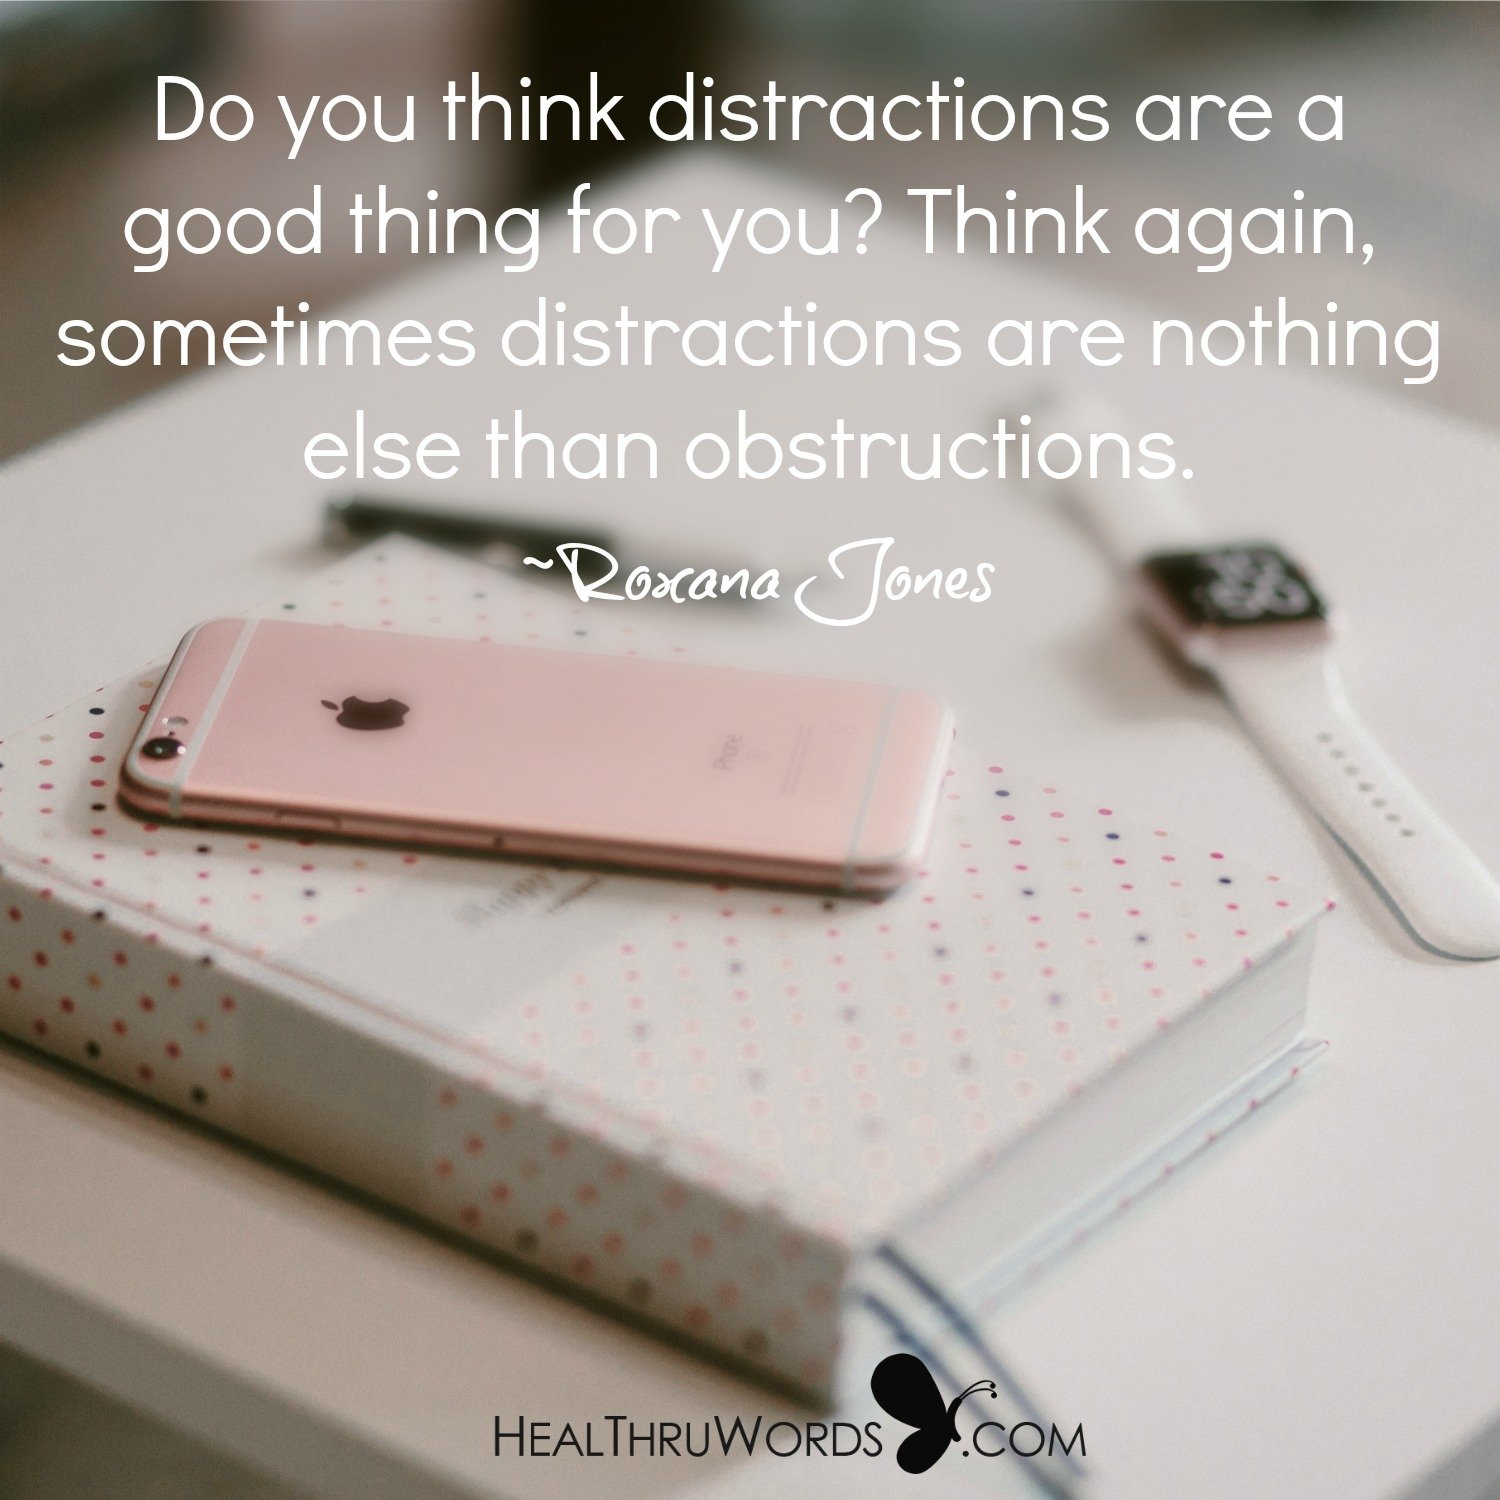 Inspirational Image: Harmful Distractions